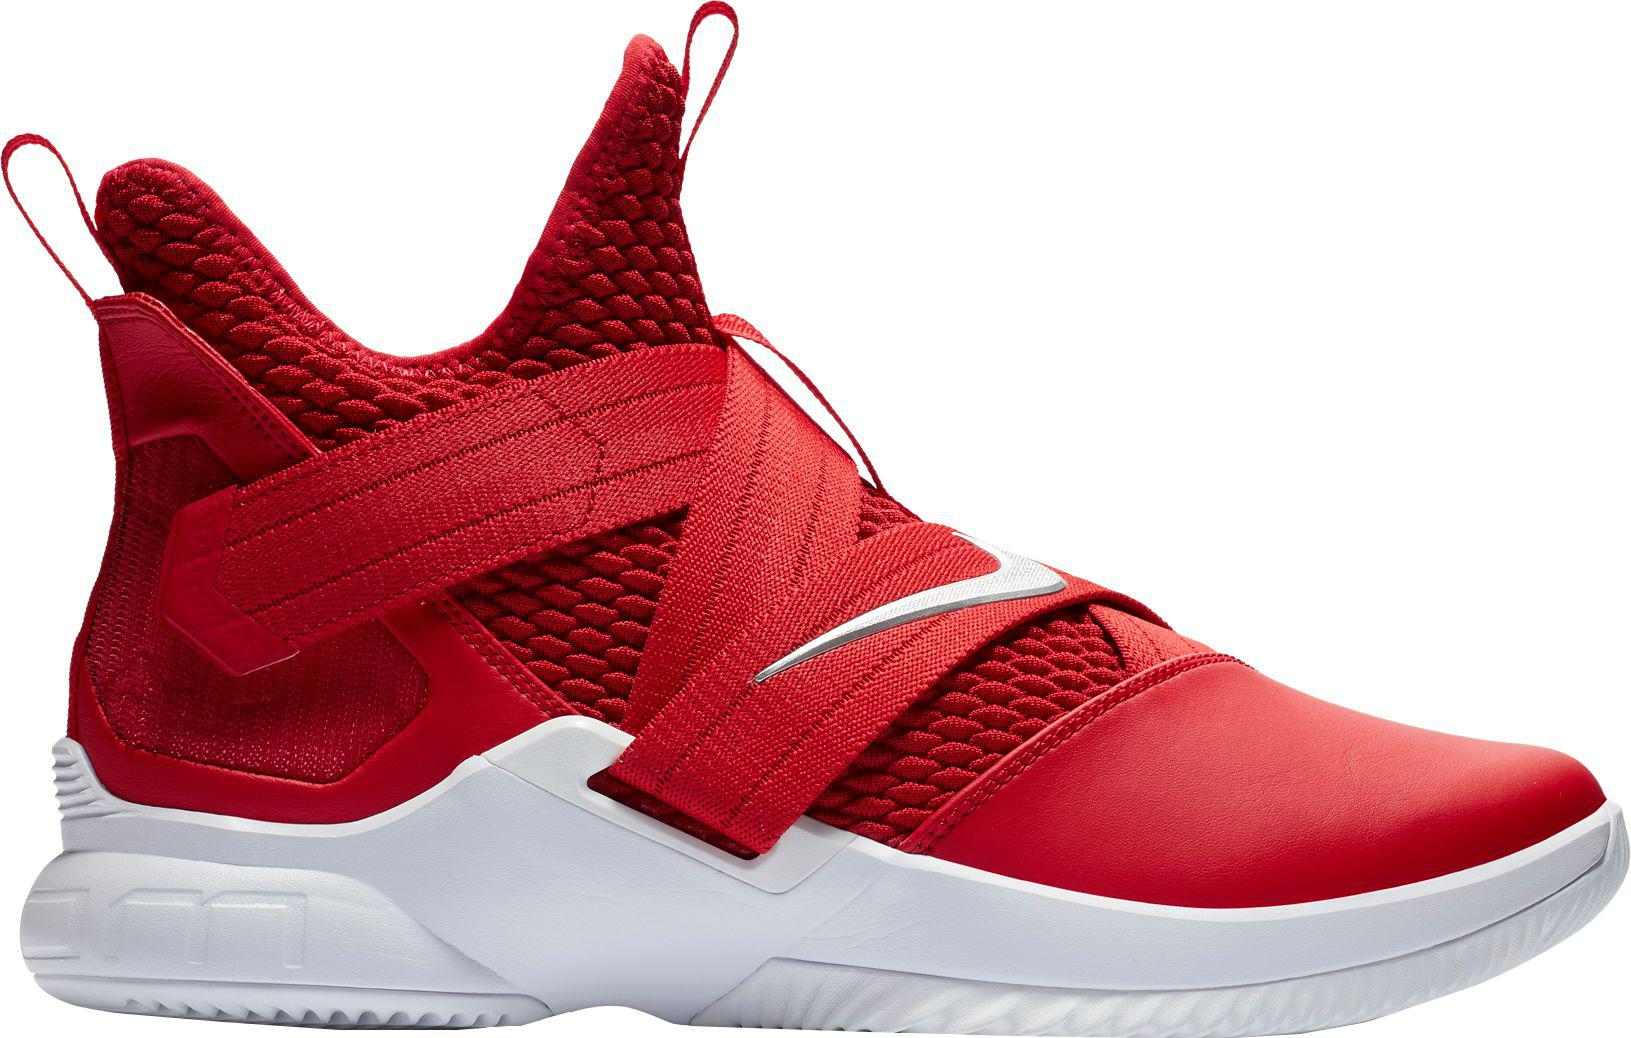 795d91d82f58 Lyst - Nike Zoom Lebron Soldier Xii Tb Basketball Shoes in Red for Men